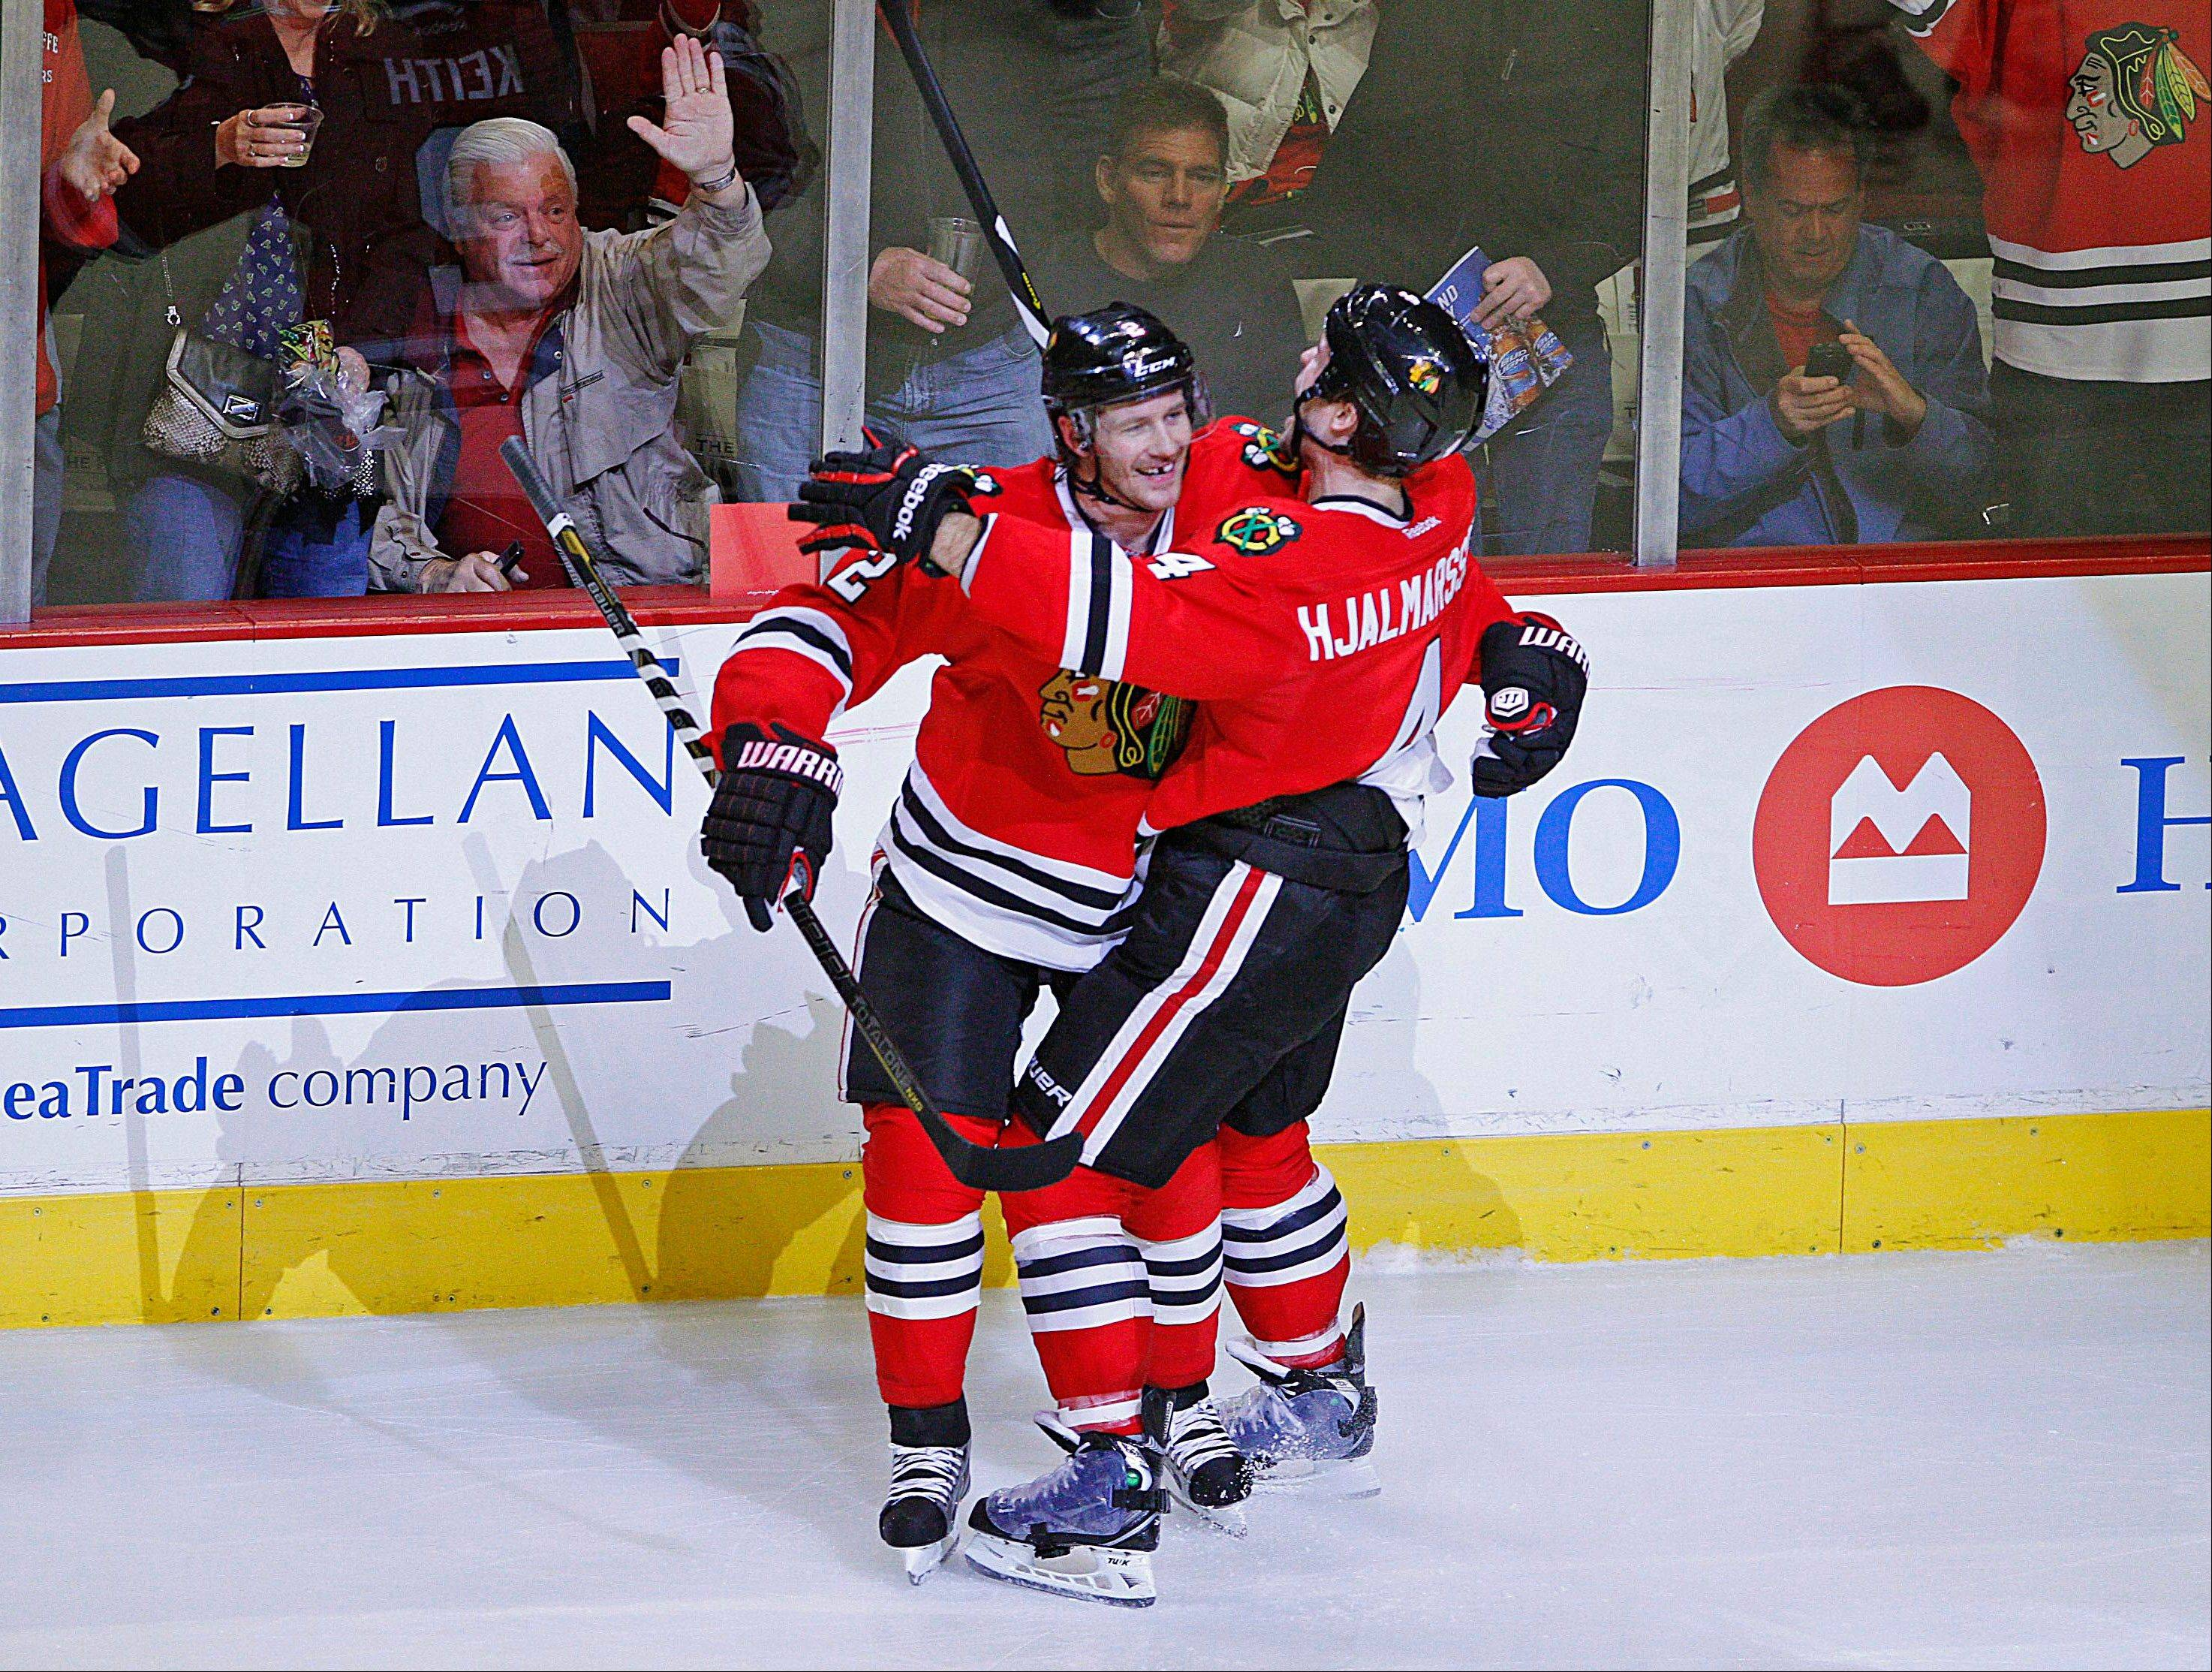 Shaw's play helps Blackhawks keep rolling